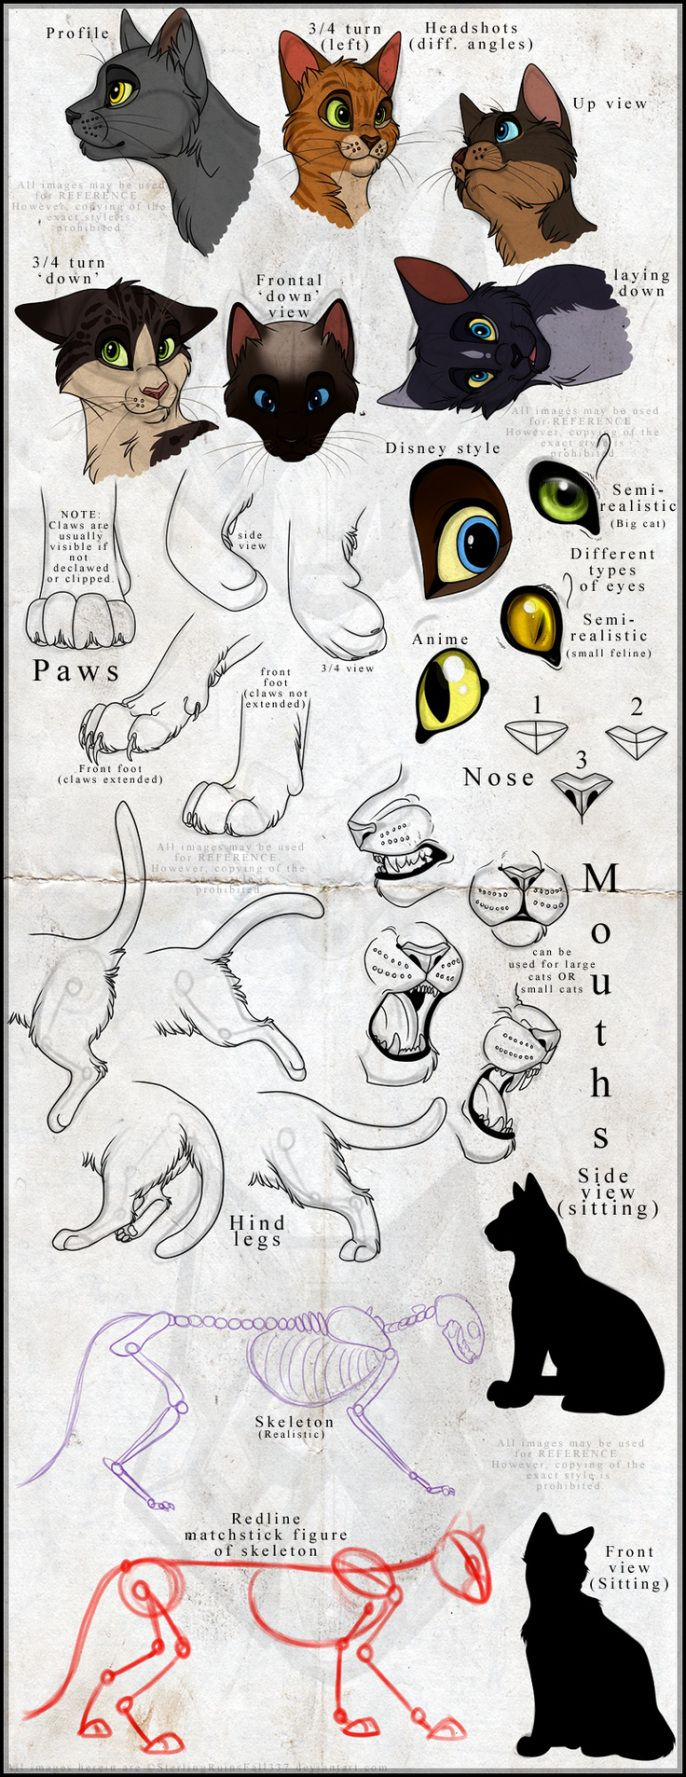 Quick tutorial on how to draw cat characters - with specific detailing on the fur and legs.